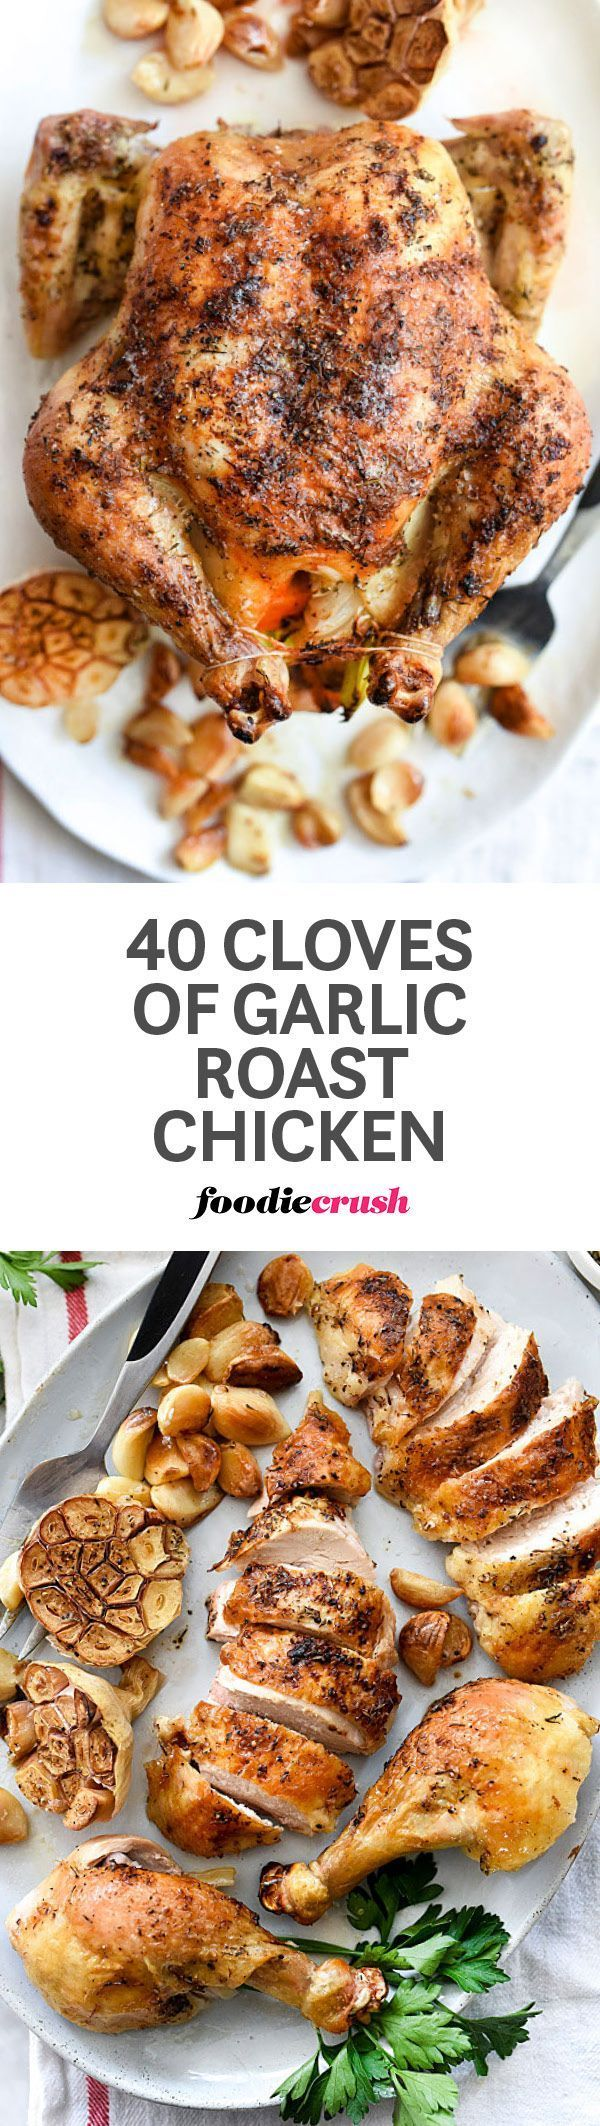 Garlic becomes soft and sweet when roasted alongside this whole roasted chicken, infusing a mellowed garlic flavor for everyone's favorite chicken dinner | http://foodiecrush.com #garlic #chicken #roastchicken